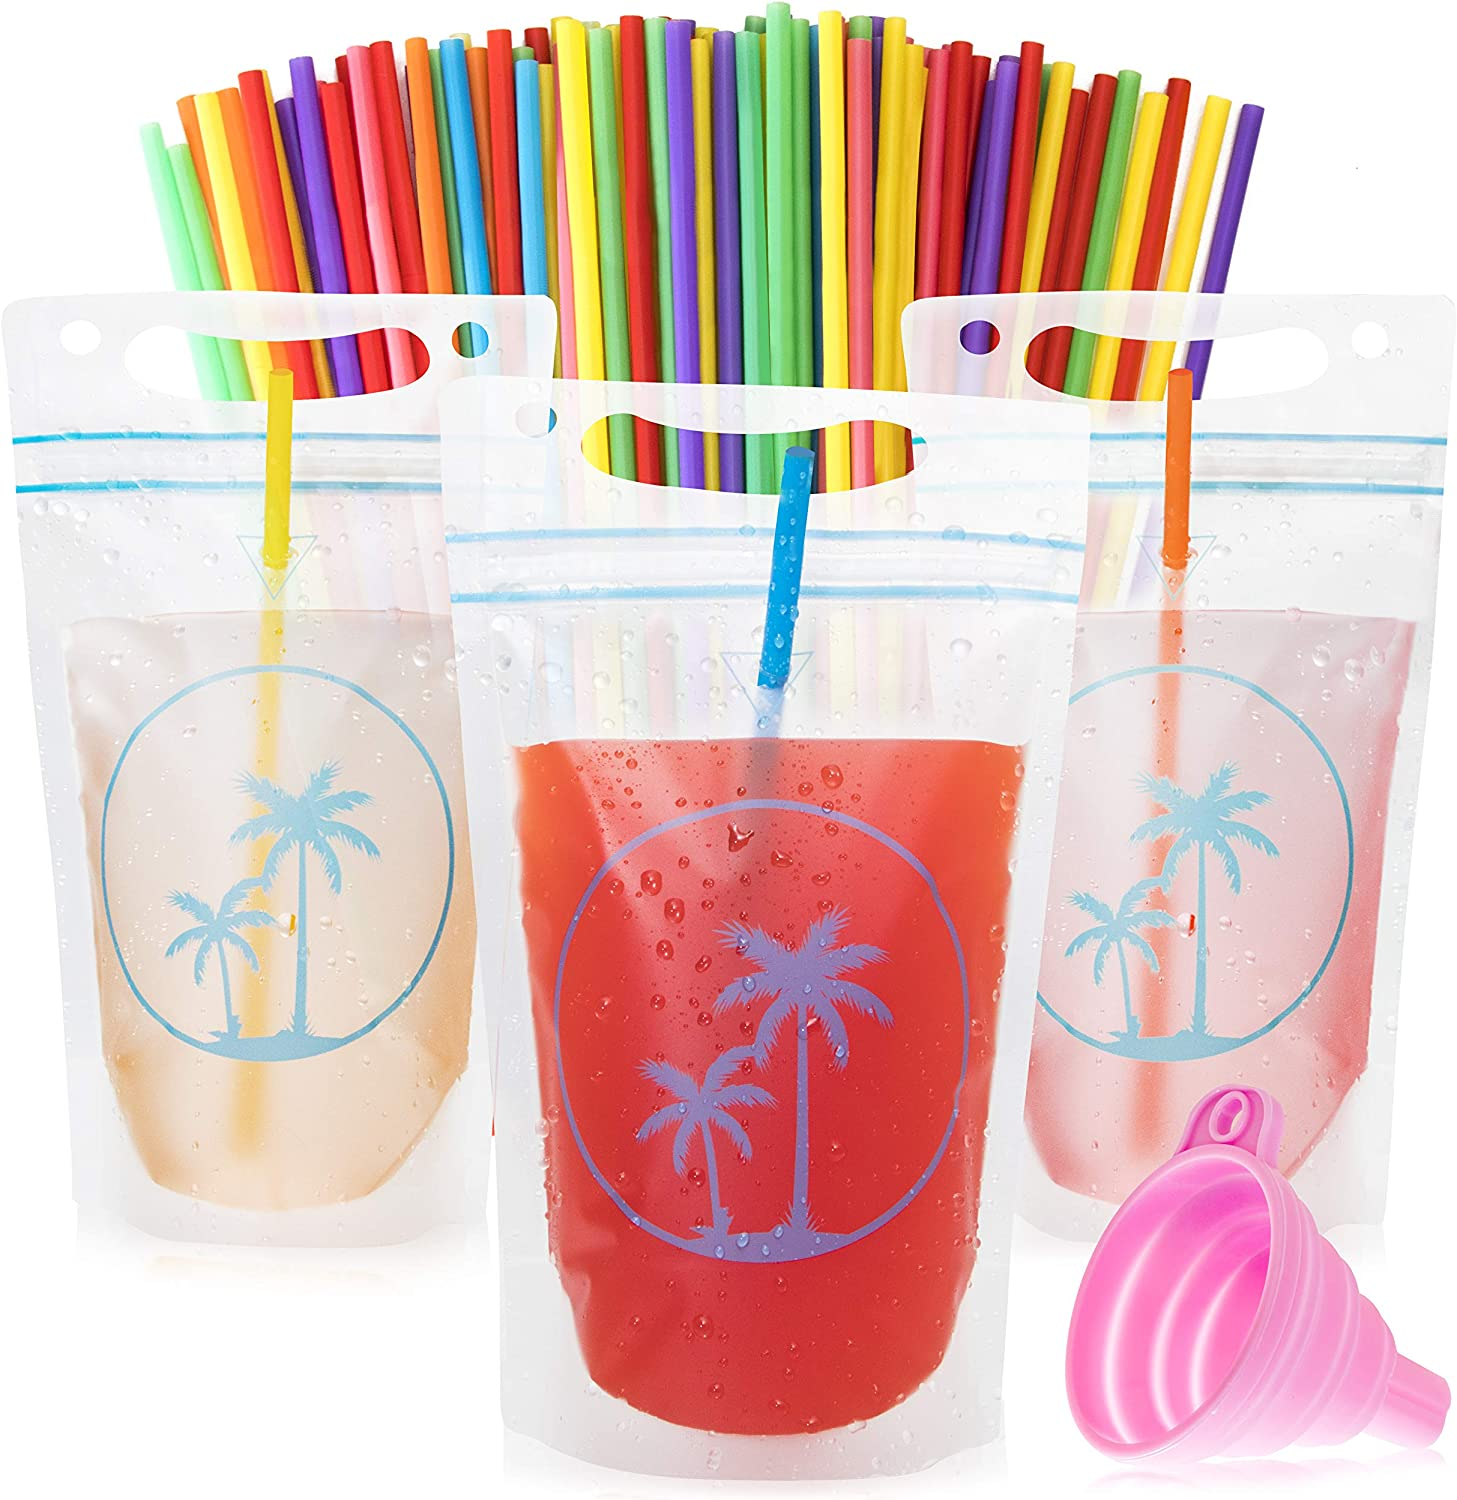 Paradise Pouches Drink Pouches with Straw Hole – 100 Disposable Smoothie Juice Pouches for Adults & Kids No Leak Resealable Double Zipper Clear Drinking Bag- Reusable Plastic BPA-Free